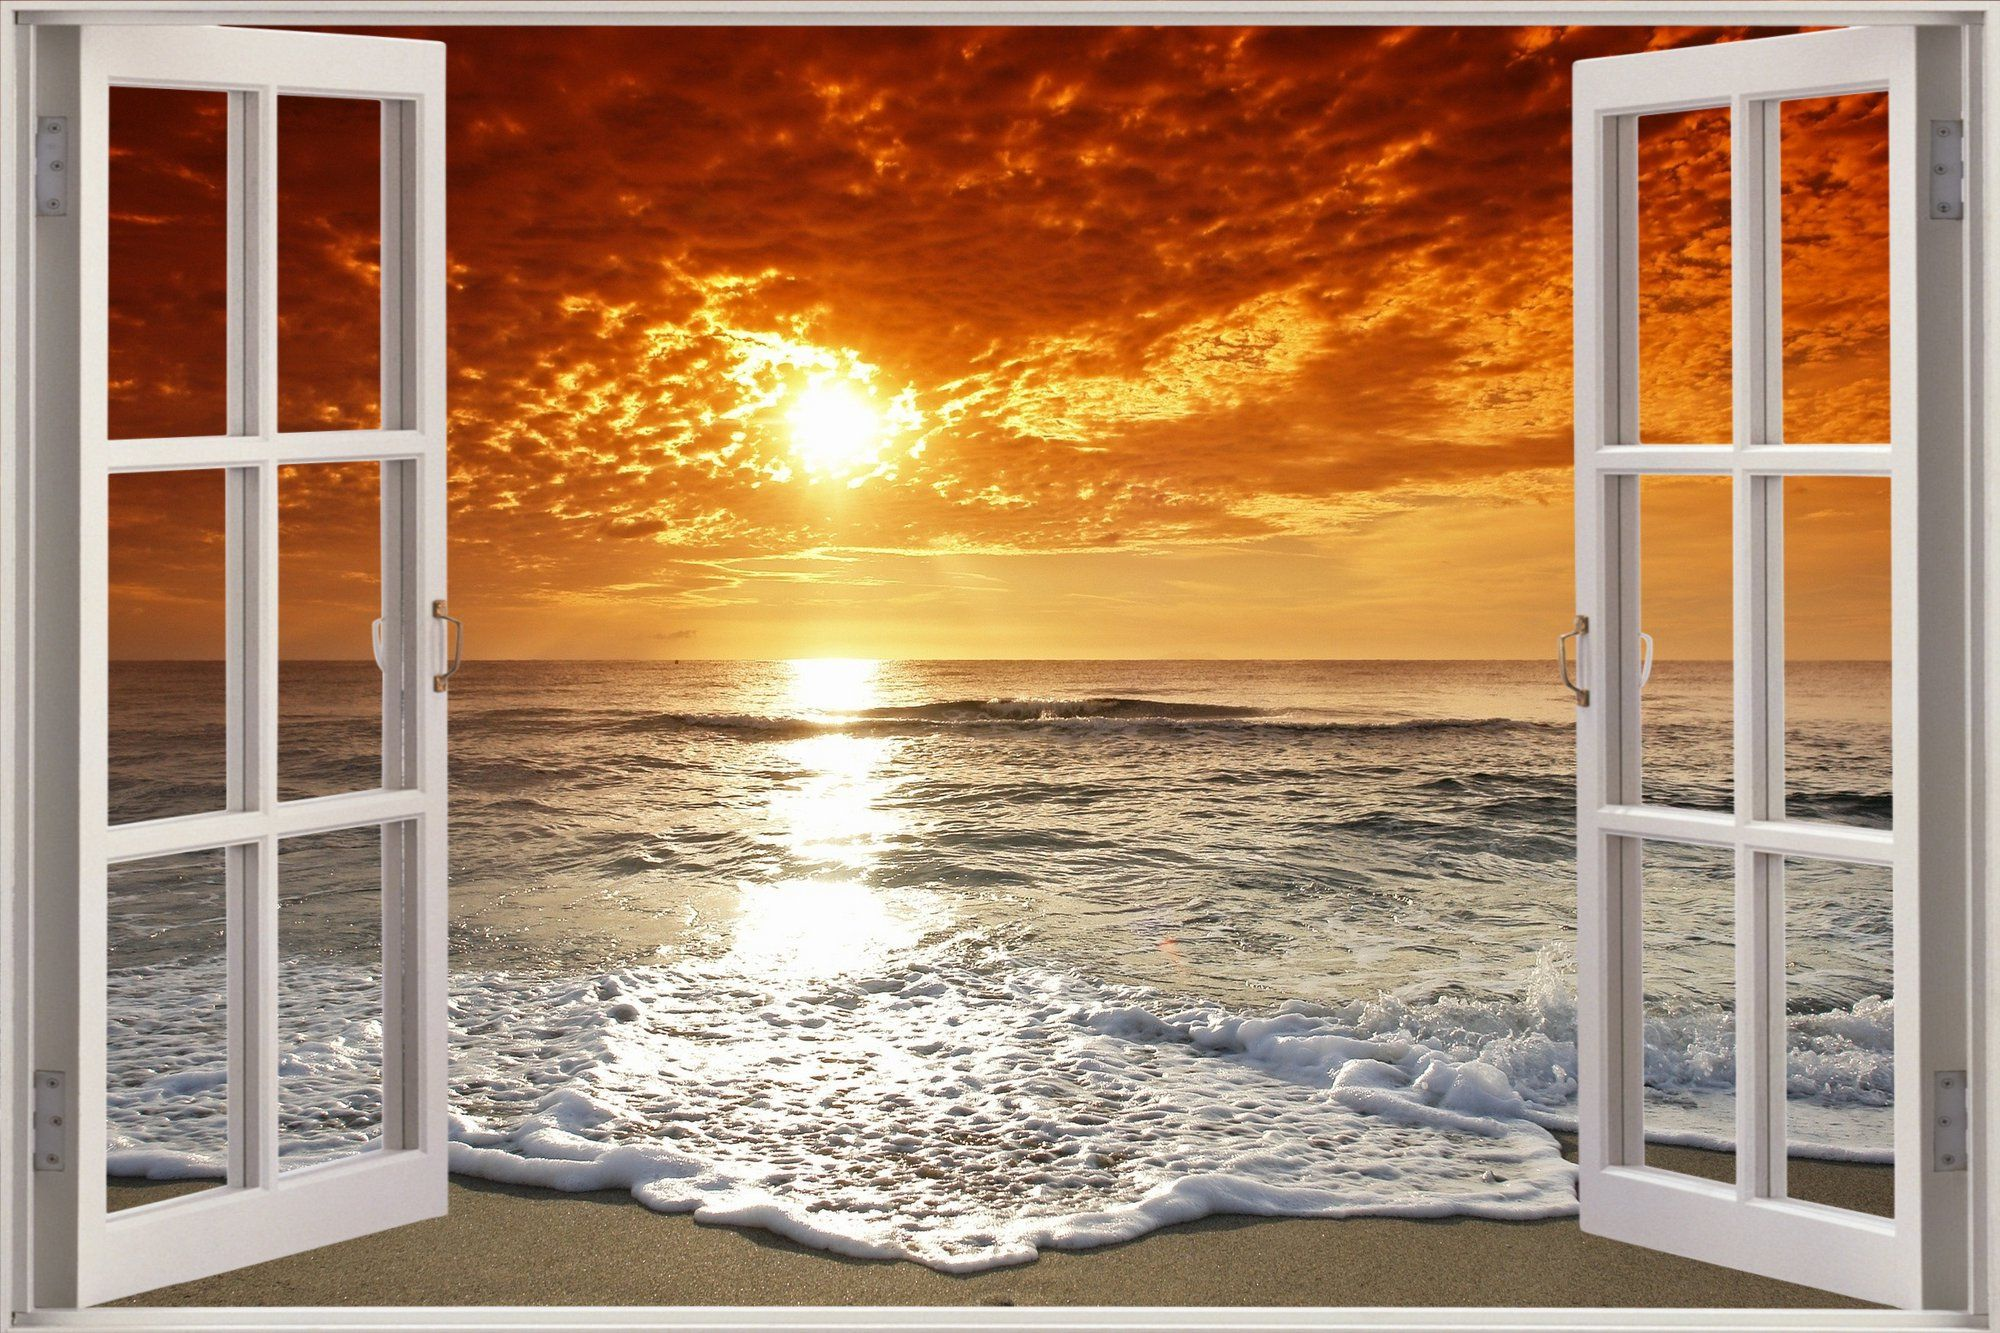 Huge 3d Window Exotic Ocean Beach View Wall Stickers Film Art Decal